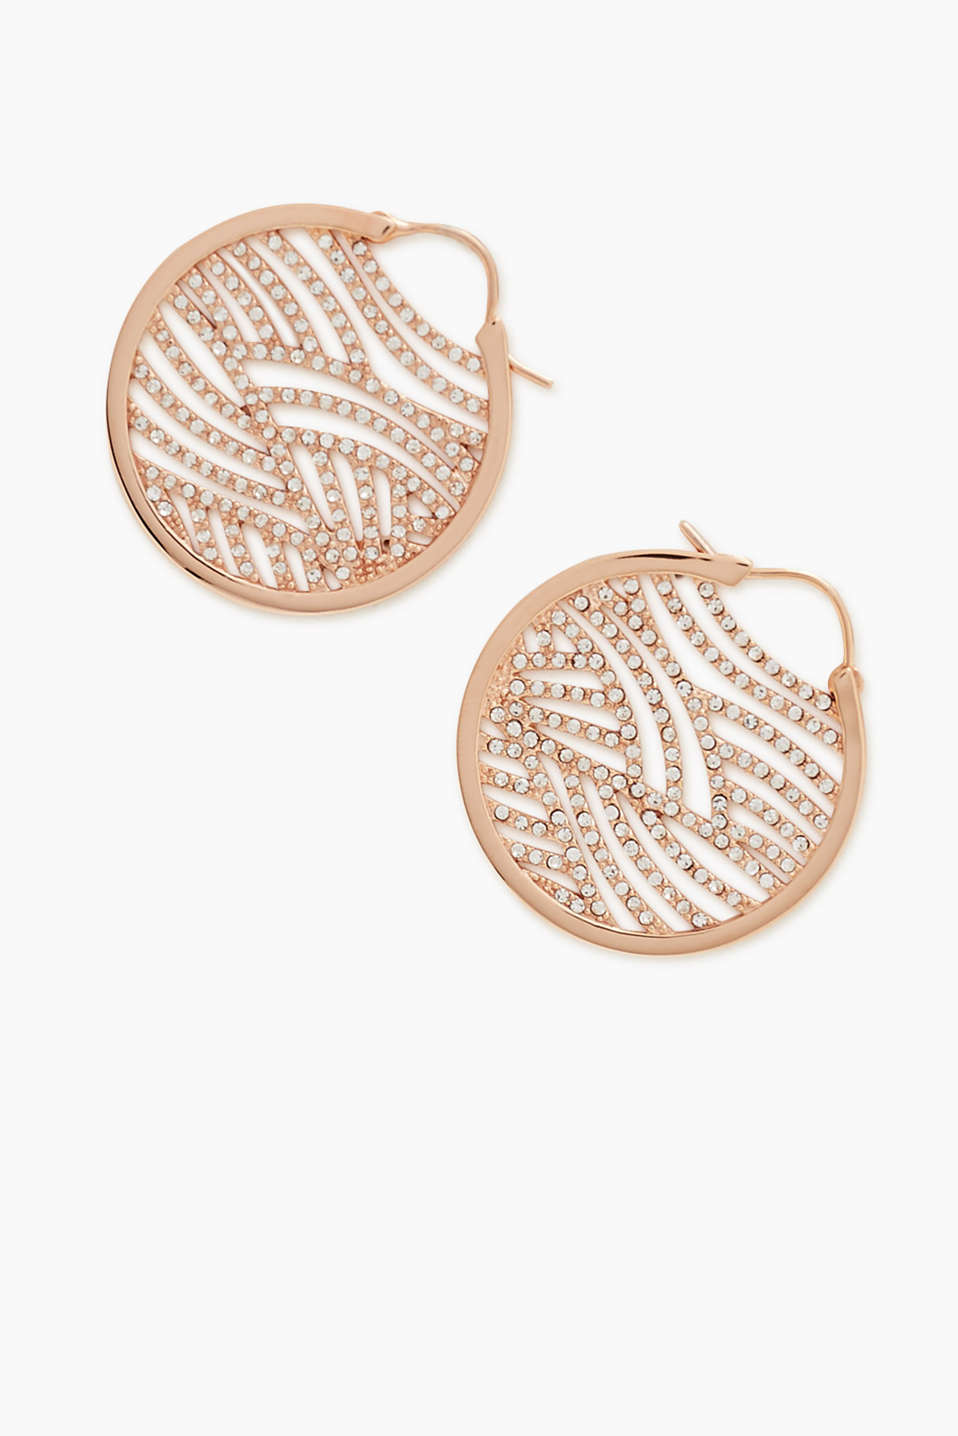 Rose gold hoop earrings with zirconia